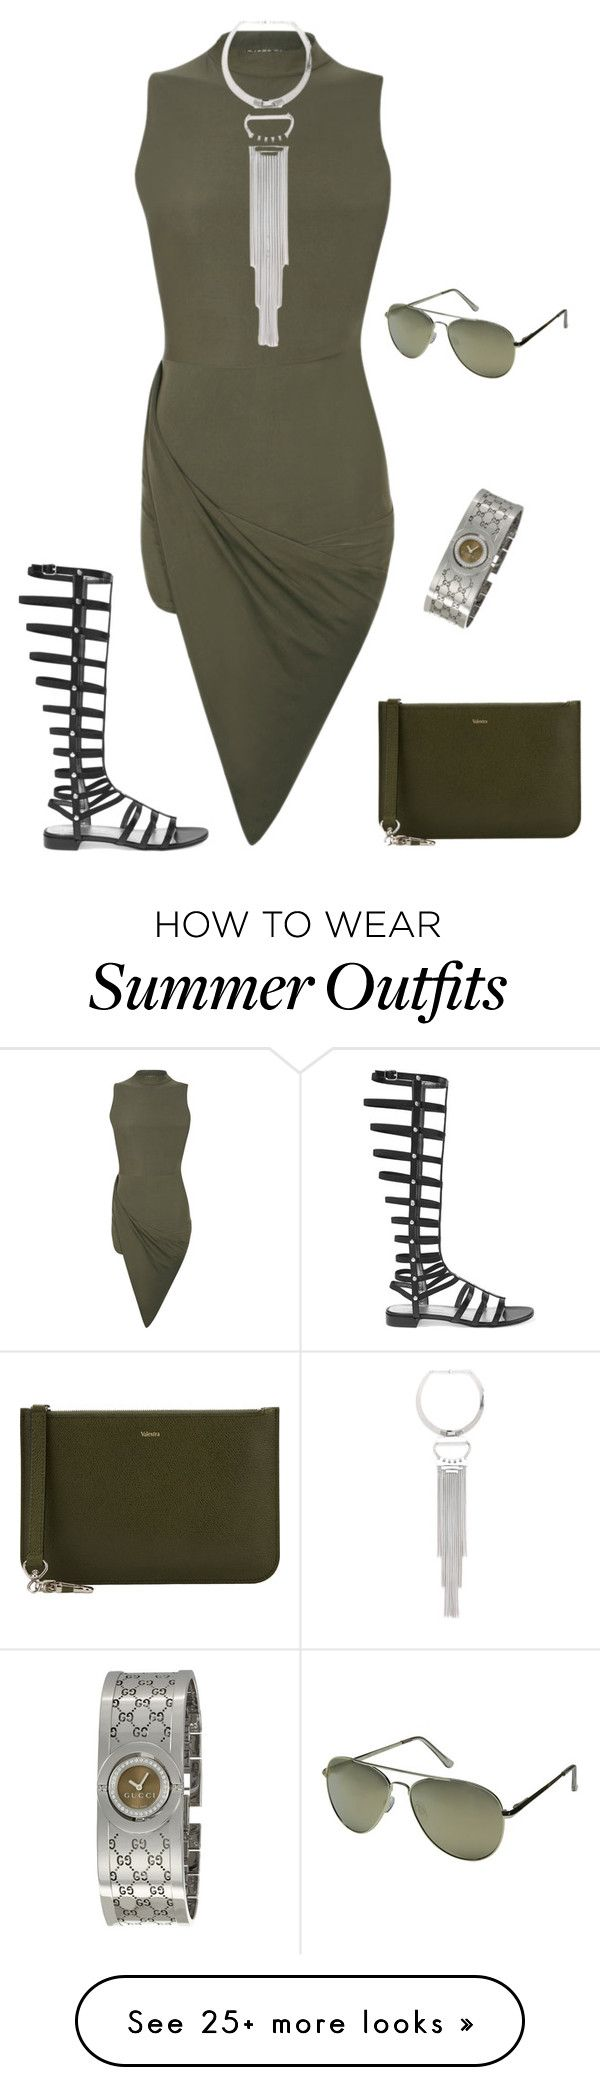 """outfit 4196"" by natalyag on Polyvore featuring Stuart Weitzman, Valextra, Pilot, Bebe, Le Specs, Gucci, Summer and sandals"